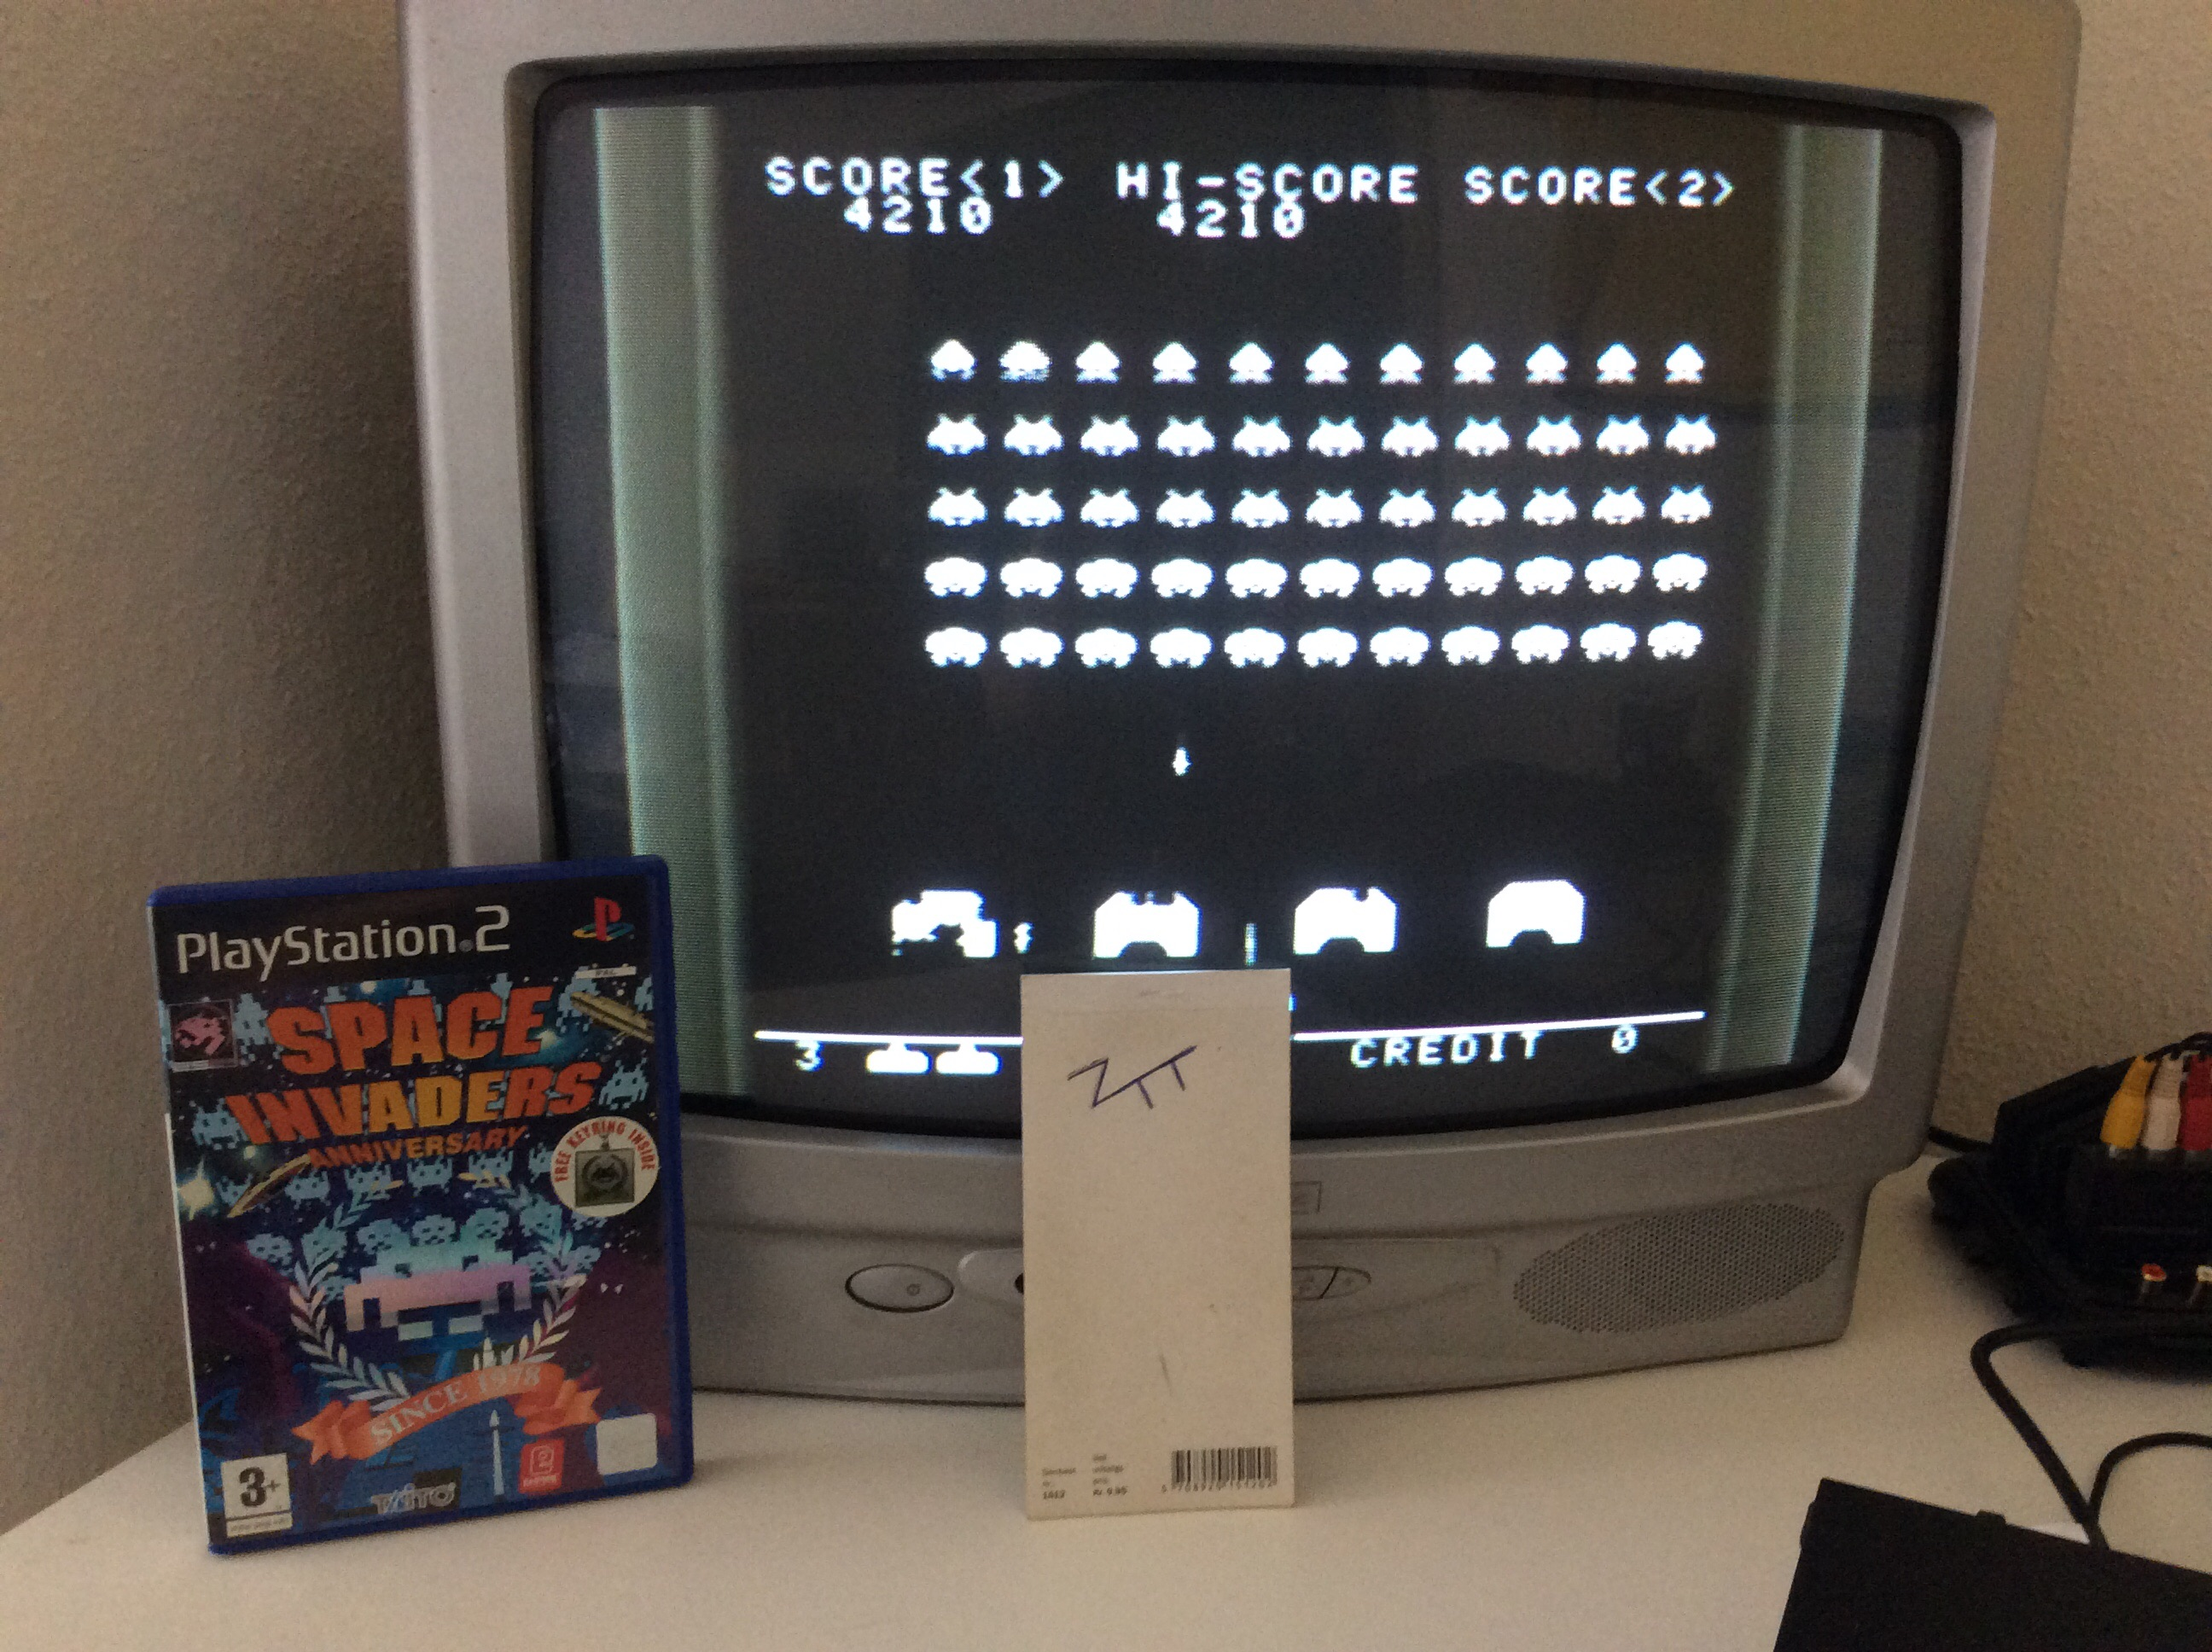 Frankie: Space Invaders Anniversary: T.T Space Invaders [Monochrome Version] (Playstation 2) 4,210 points on 2016-06-18 02:37:06